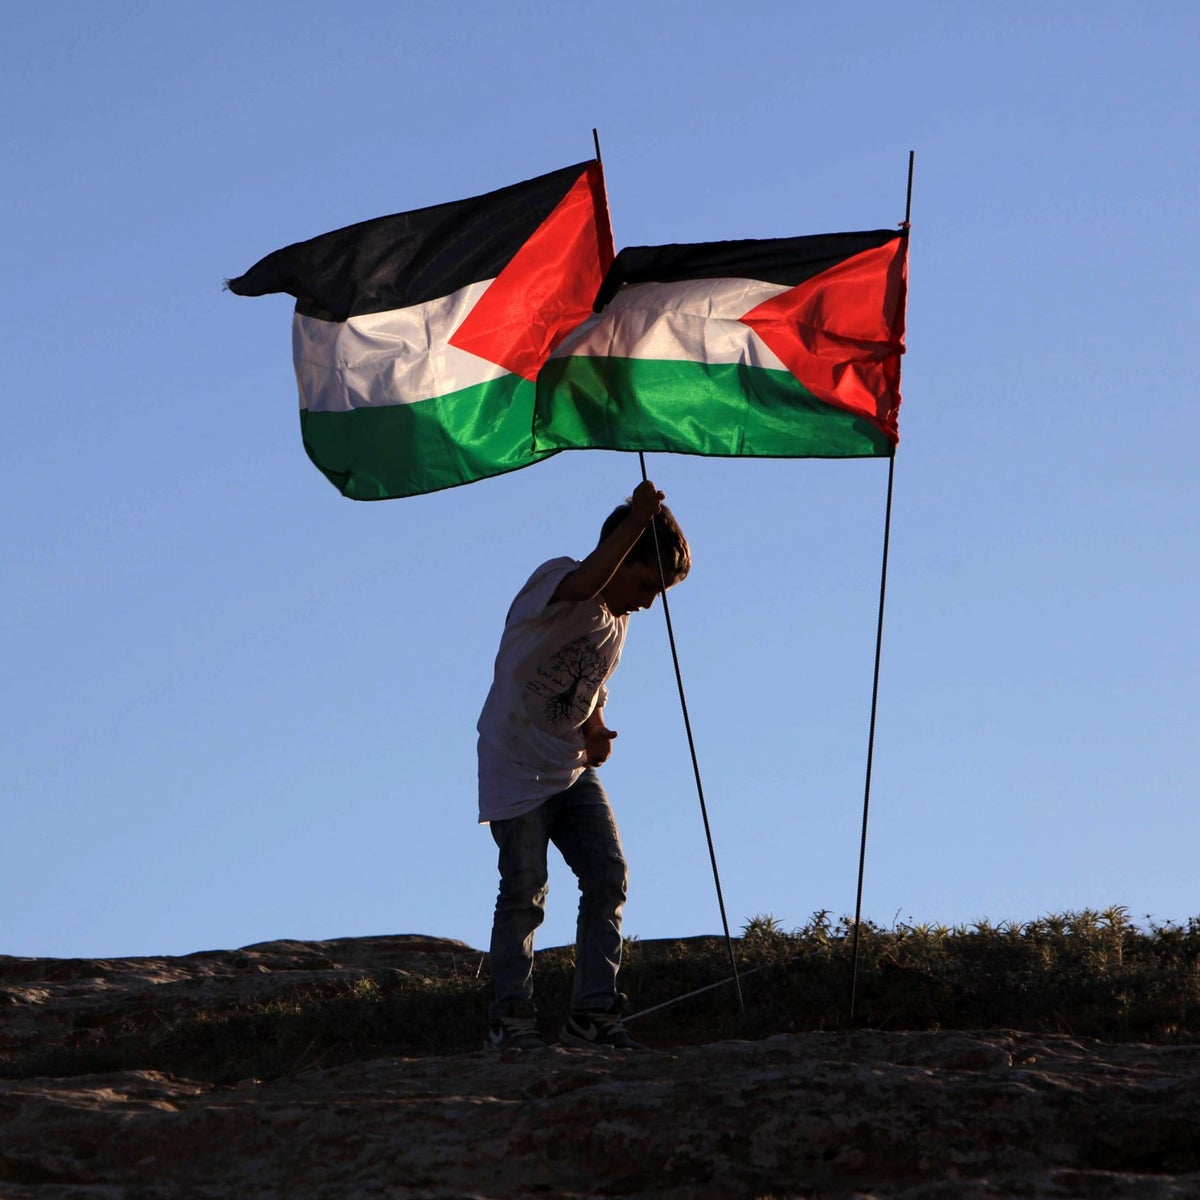 A youth flying the Palestinian flag at the Sumud Freedom Camp in the West Bank, May 25, 2017.